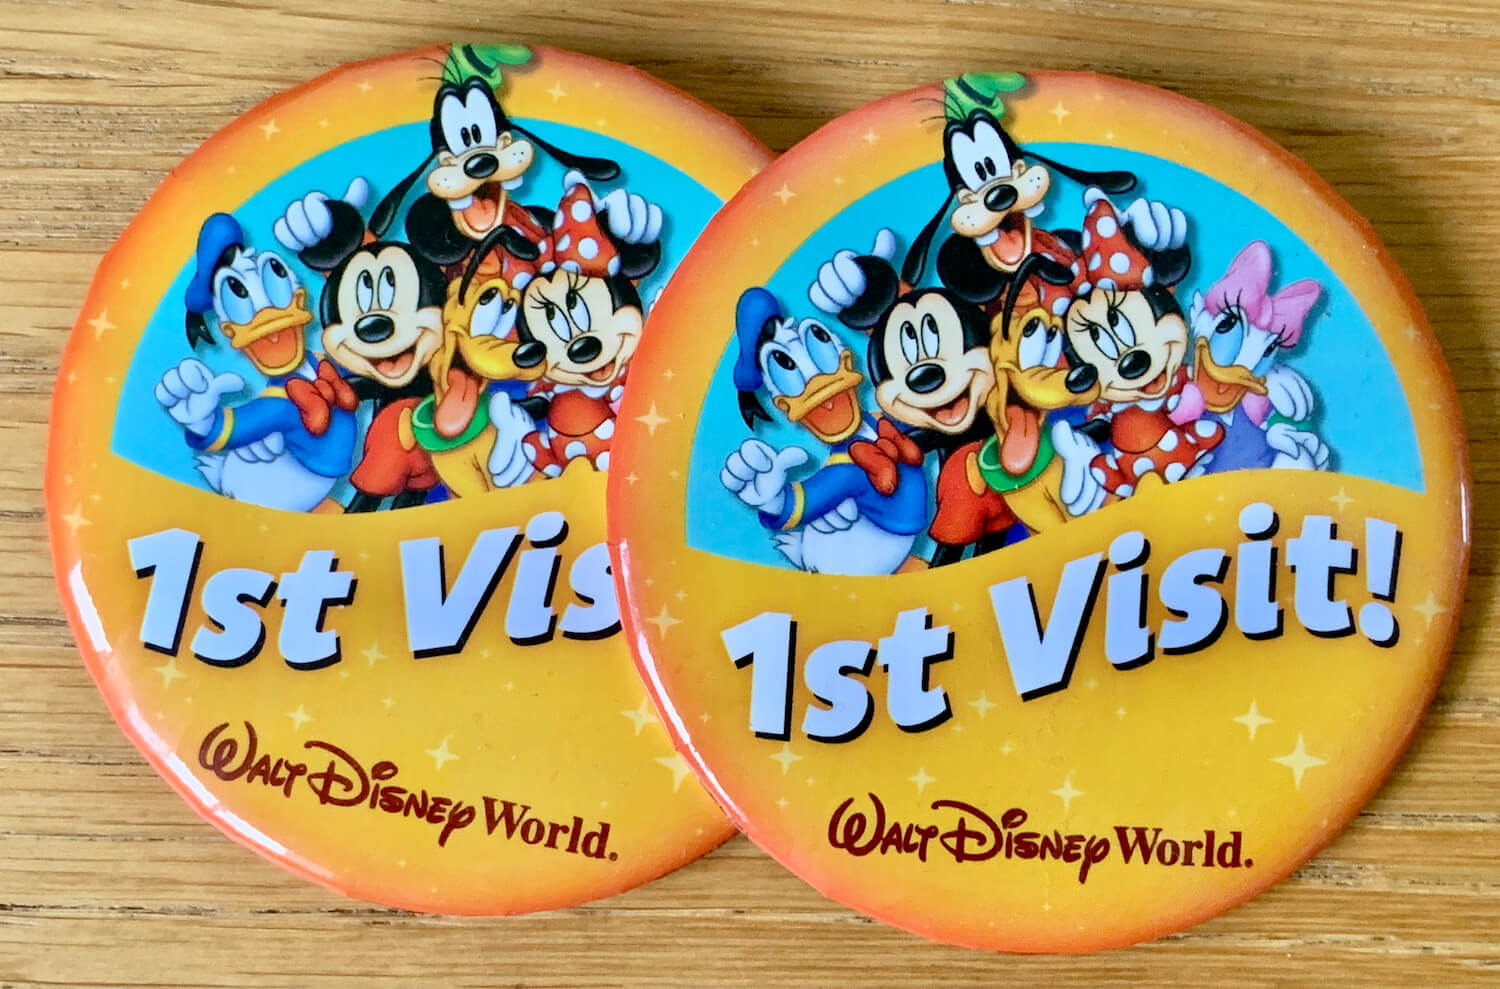 Walt Disney World Celebration Buttons 1st Visit